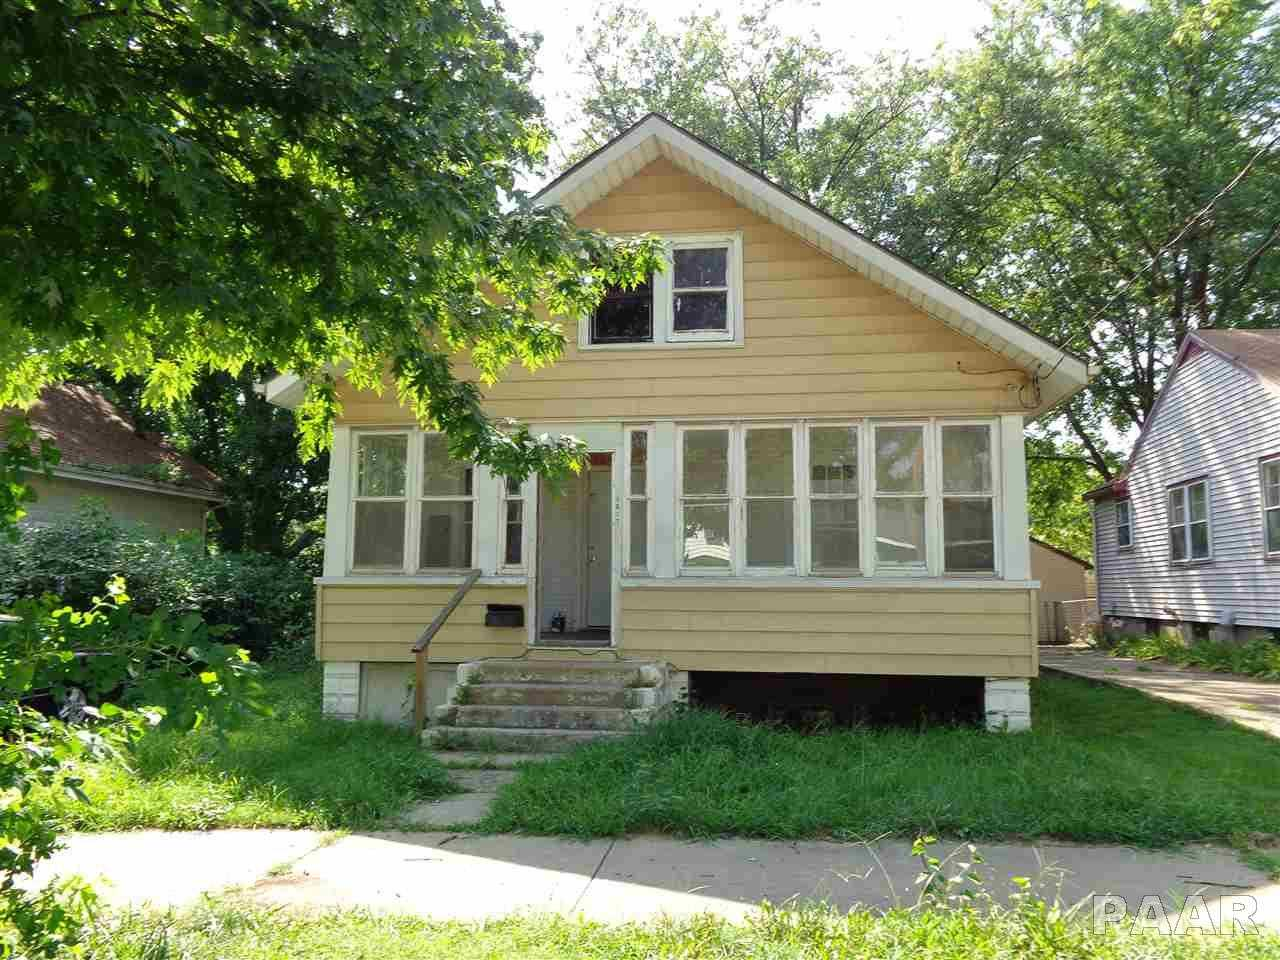 $10,000 - 2Br/1Ba -  for Sale in Westmoreland, Peoria